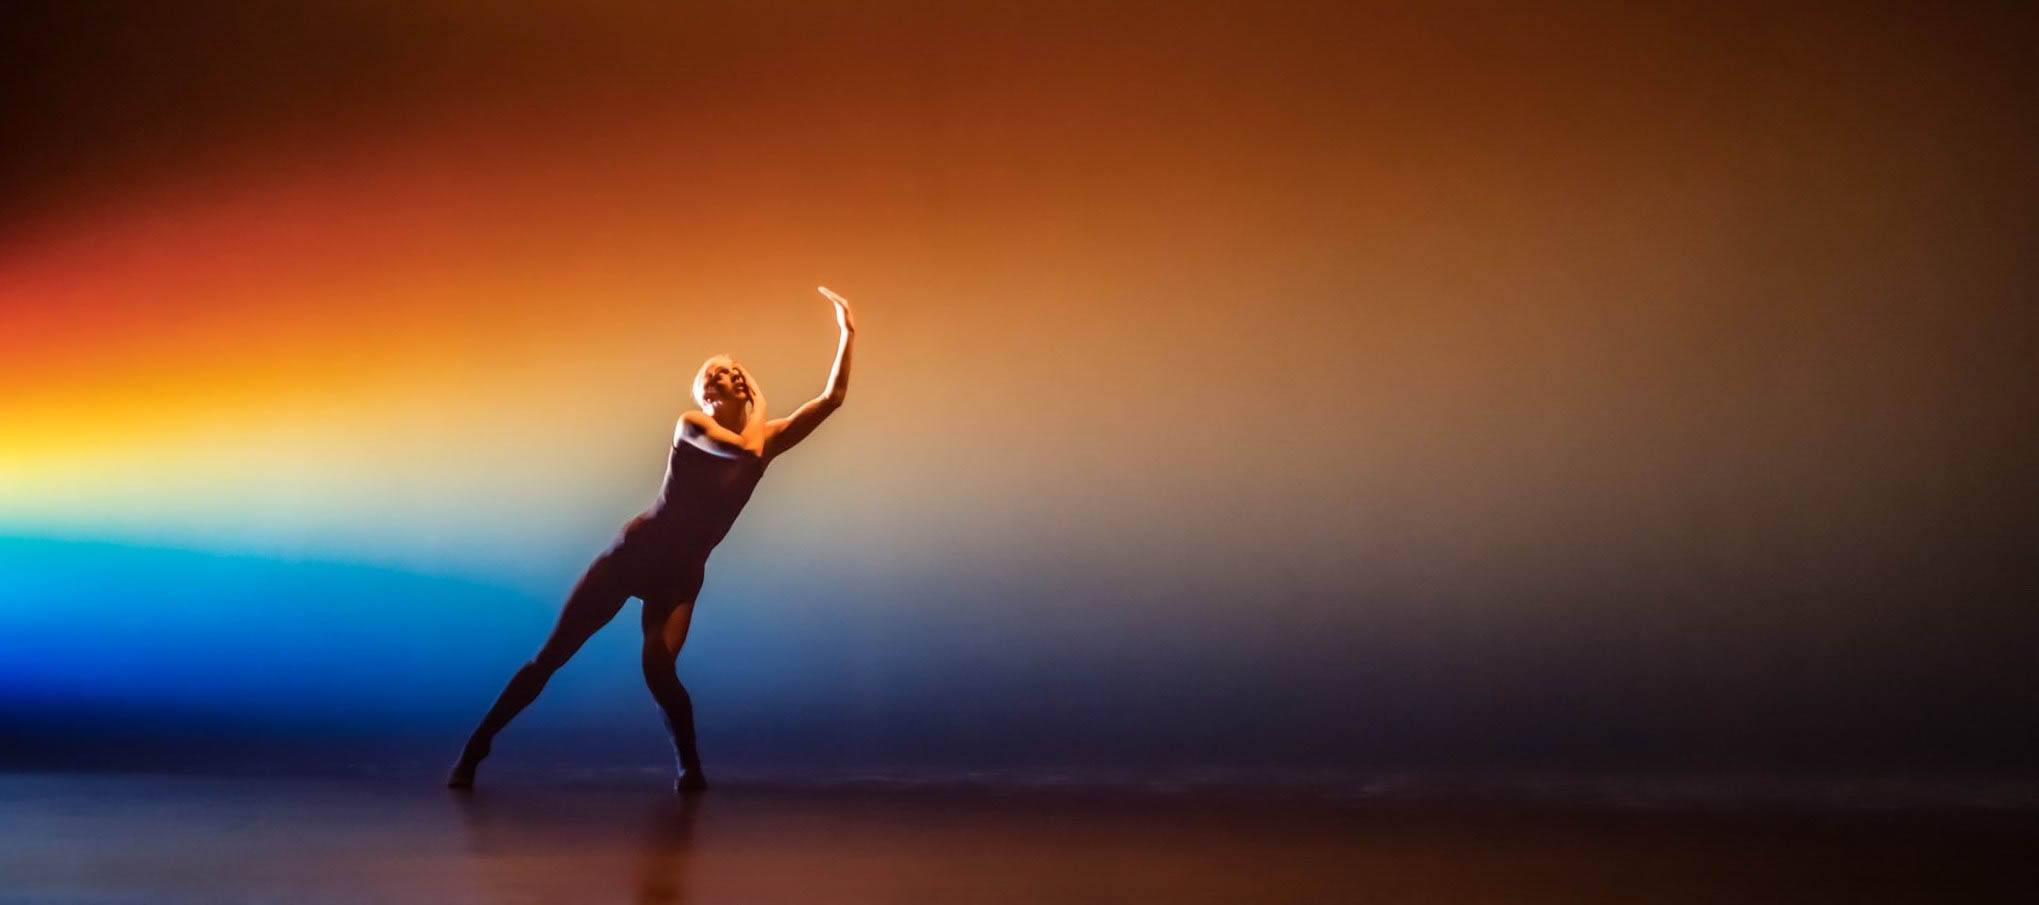 Woman dancing at Sadler's Wells, London, backlit with orange and blue lights